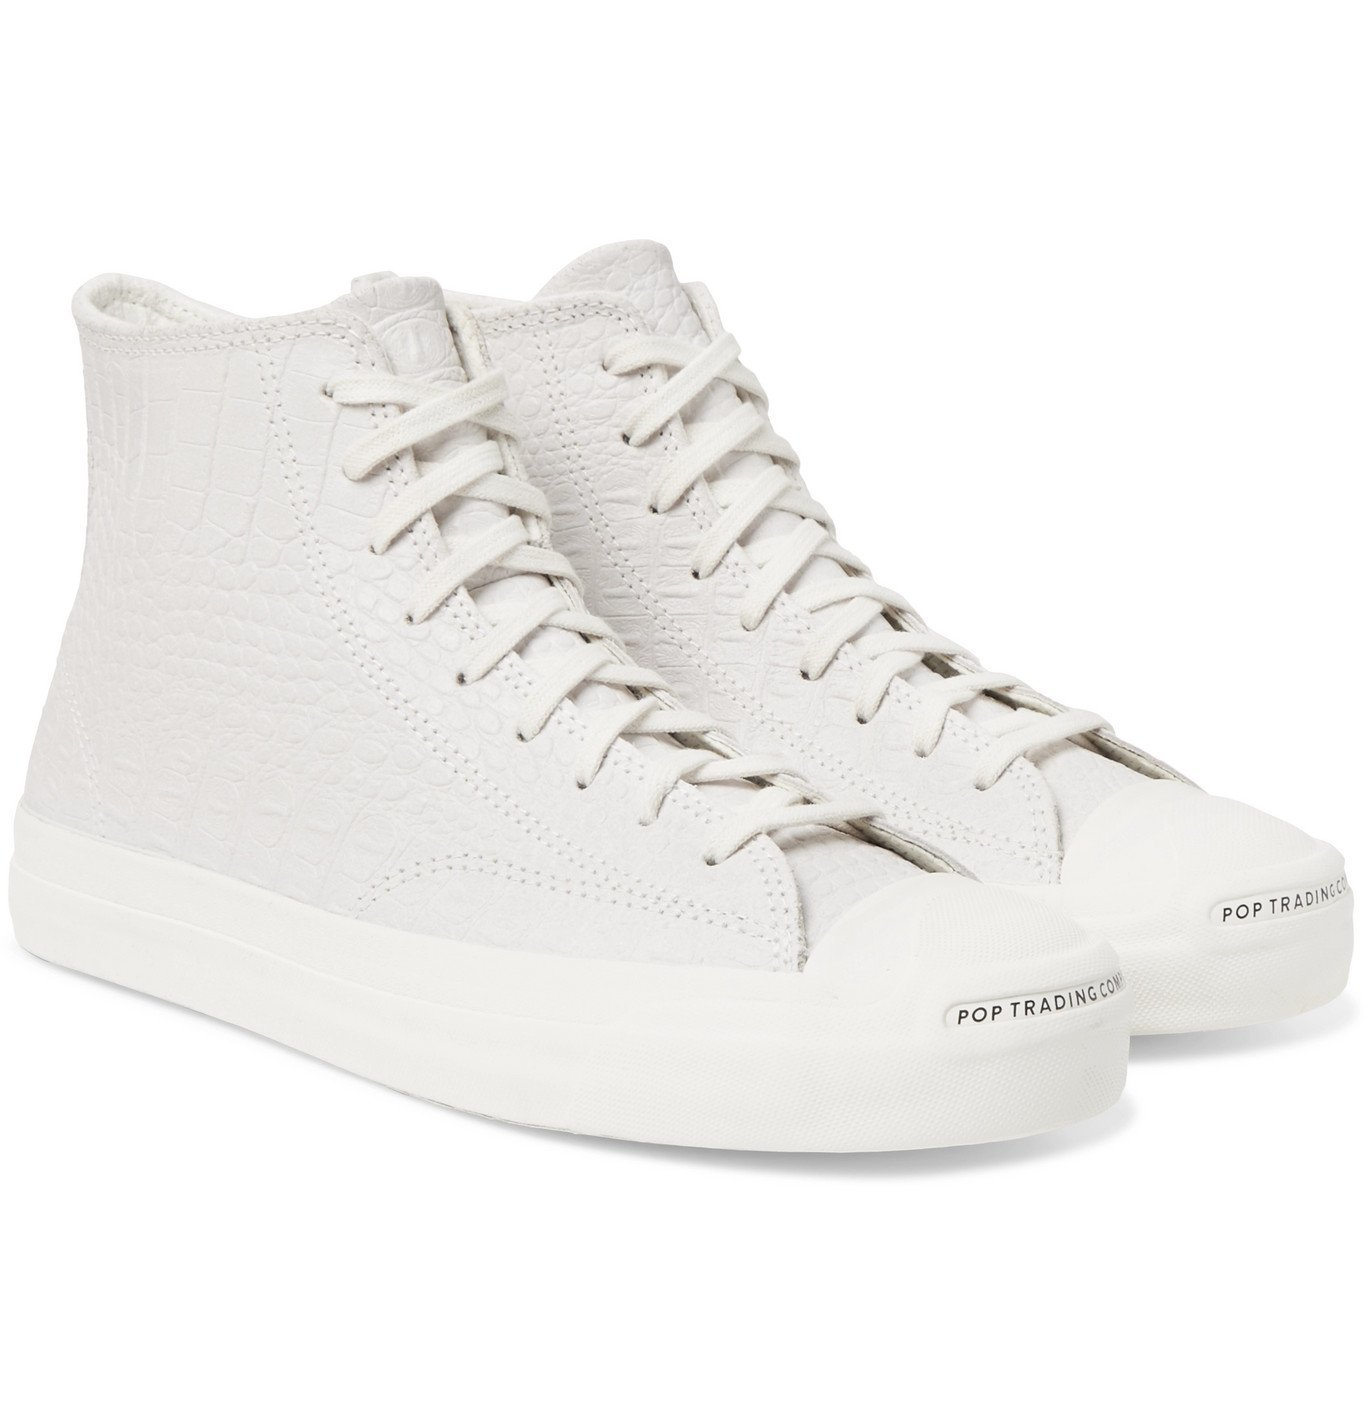 Photo: Converse - Pop Trading Company Jack Purcell Embossed Leather High-Top Sneakers - Neutrals